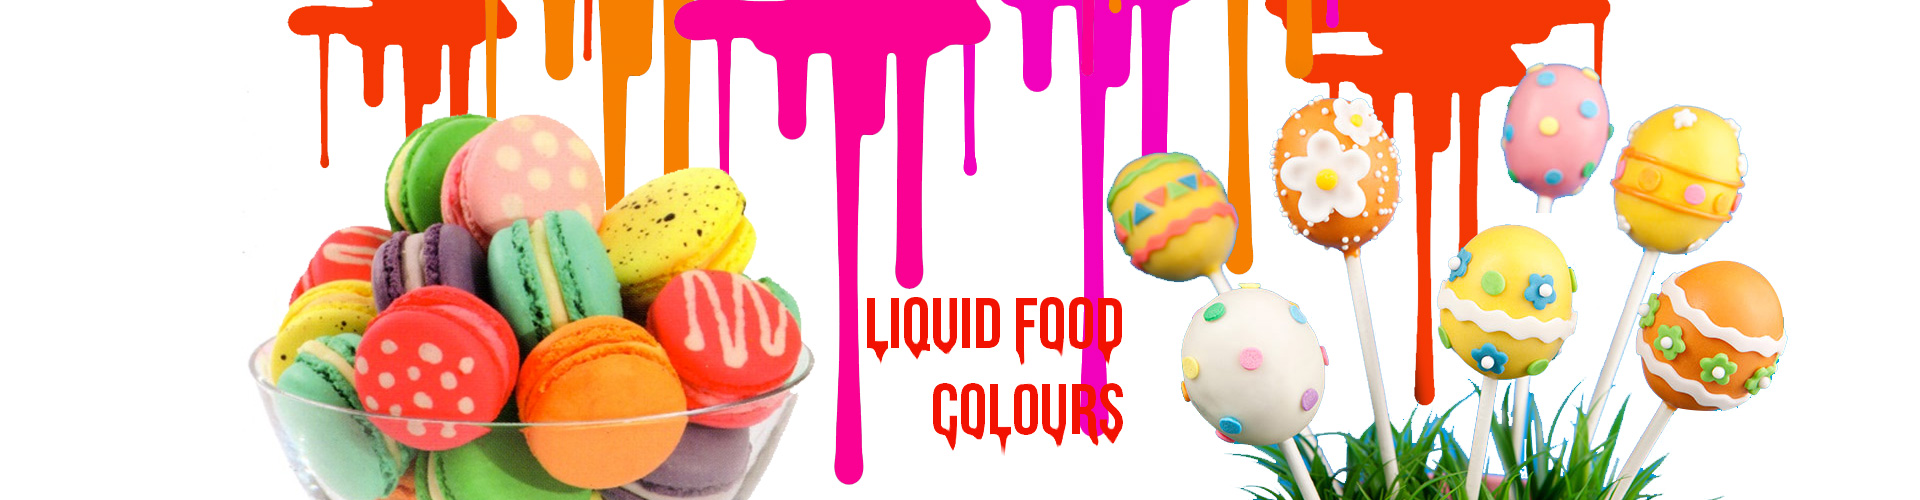 IFF ESSENCE & FOODCOLOURS,SUPERB FORMULATION ESSENCE,LIQUID FOOD COLORS,WEIKFIELD FOOD PRODUCTS,POSH FOOD PRODUCTS,SAF YEAST PRODUCTS & CAKE GEL,CALPRO FOOD PRODUCTS (BREAD MIXERS & FRUIT FILLING PRODUCTS),CRUSH & FRUIT SYRUP,CHOCOLATE BARS & CHIPS,MARGIRINE (BUNGE INDIA PVT LTD) & VANASPATHI,BUTTER SHEETS & PAPER CUPS (MUFIN CUPS),ICING SUGAR,DESICATED COCOUNT PRODUCTS AND COCOUNT MILK PRODUCTS,SKIMMED MILK POWDER,JAMS,CAKE BOXES,CAKE BOARD,BREAD IMPROVERS & GLUTONS,RELISH (SWEET FREE) POWDER,HERBS,DEL MONTE PRODUCTS